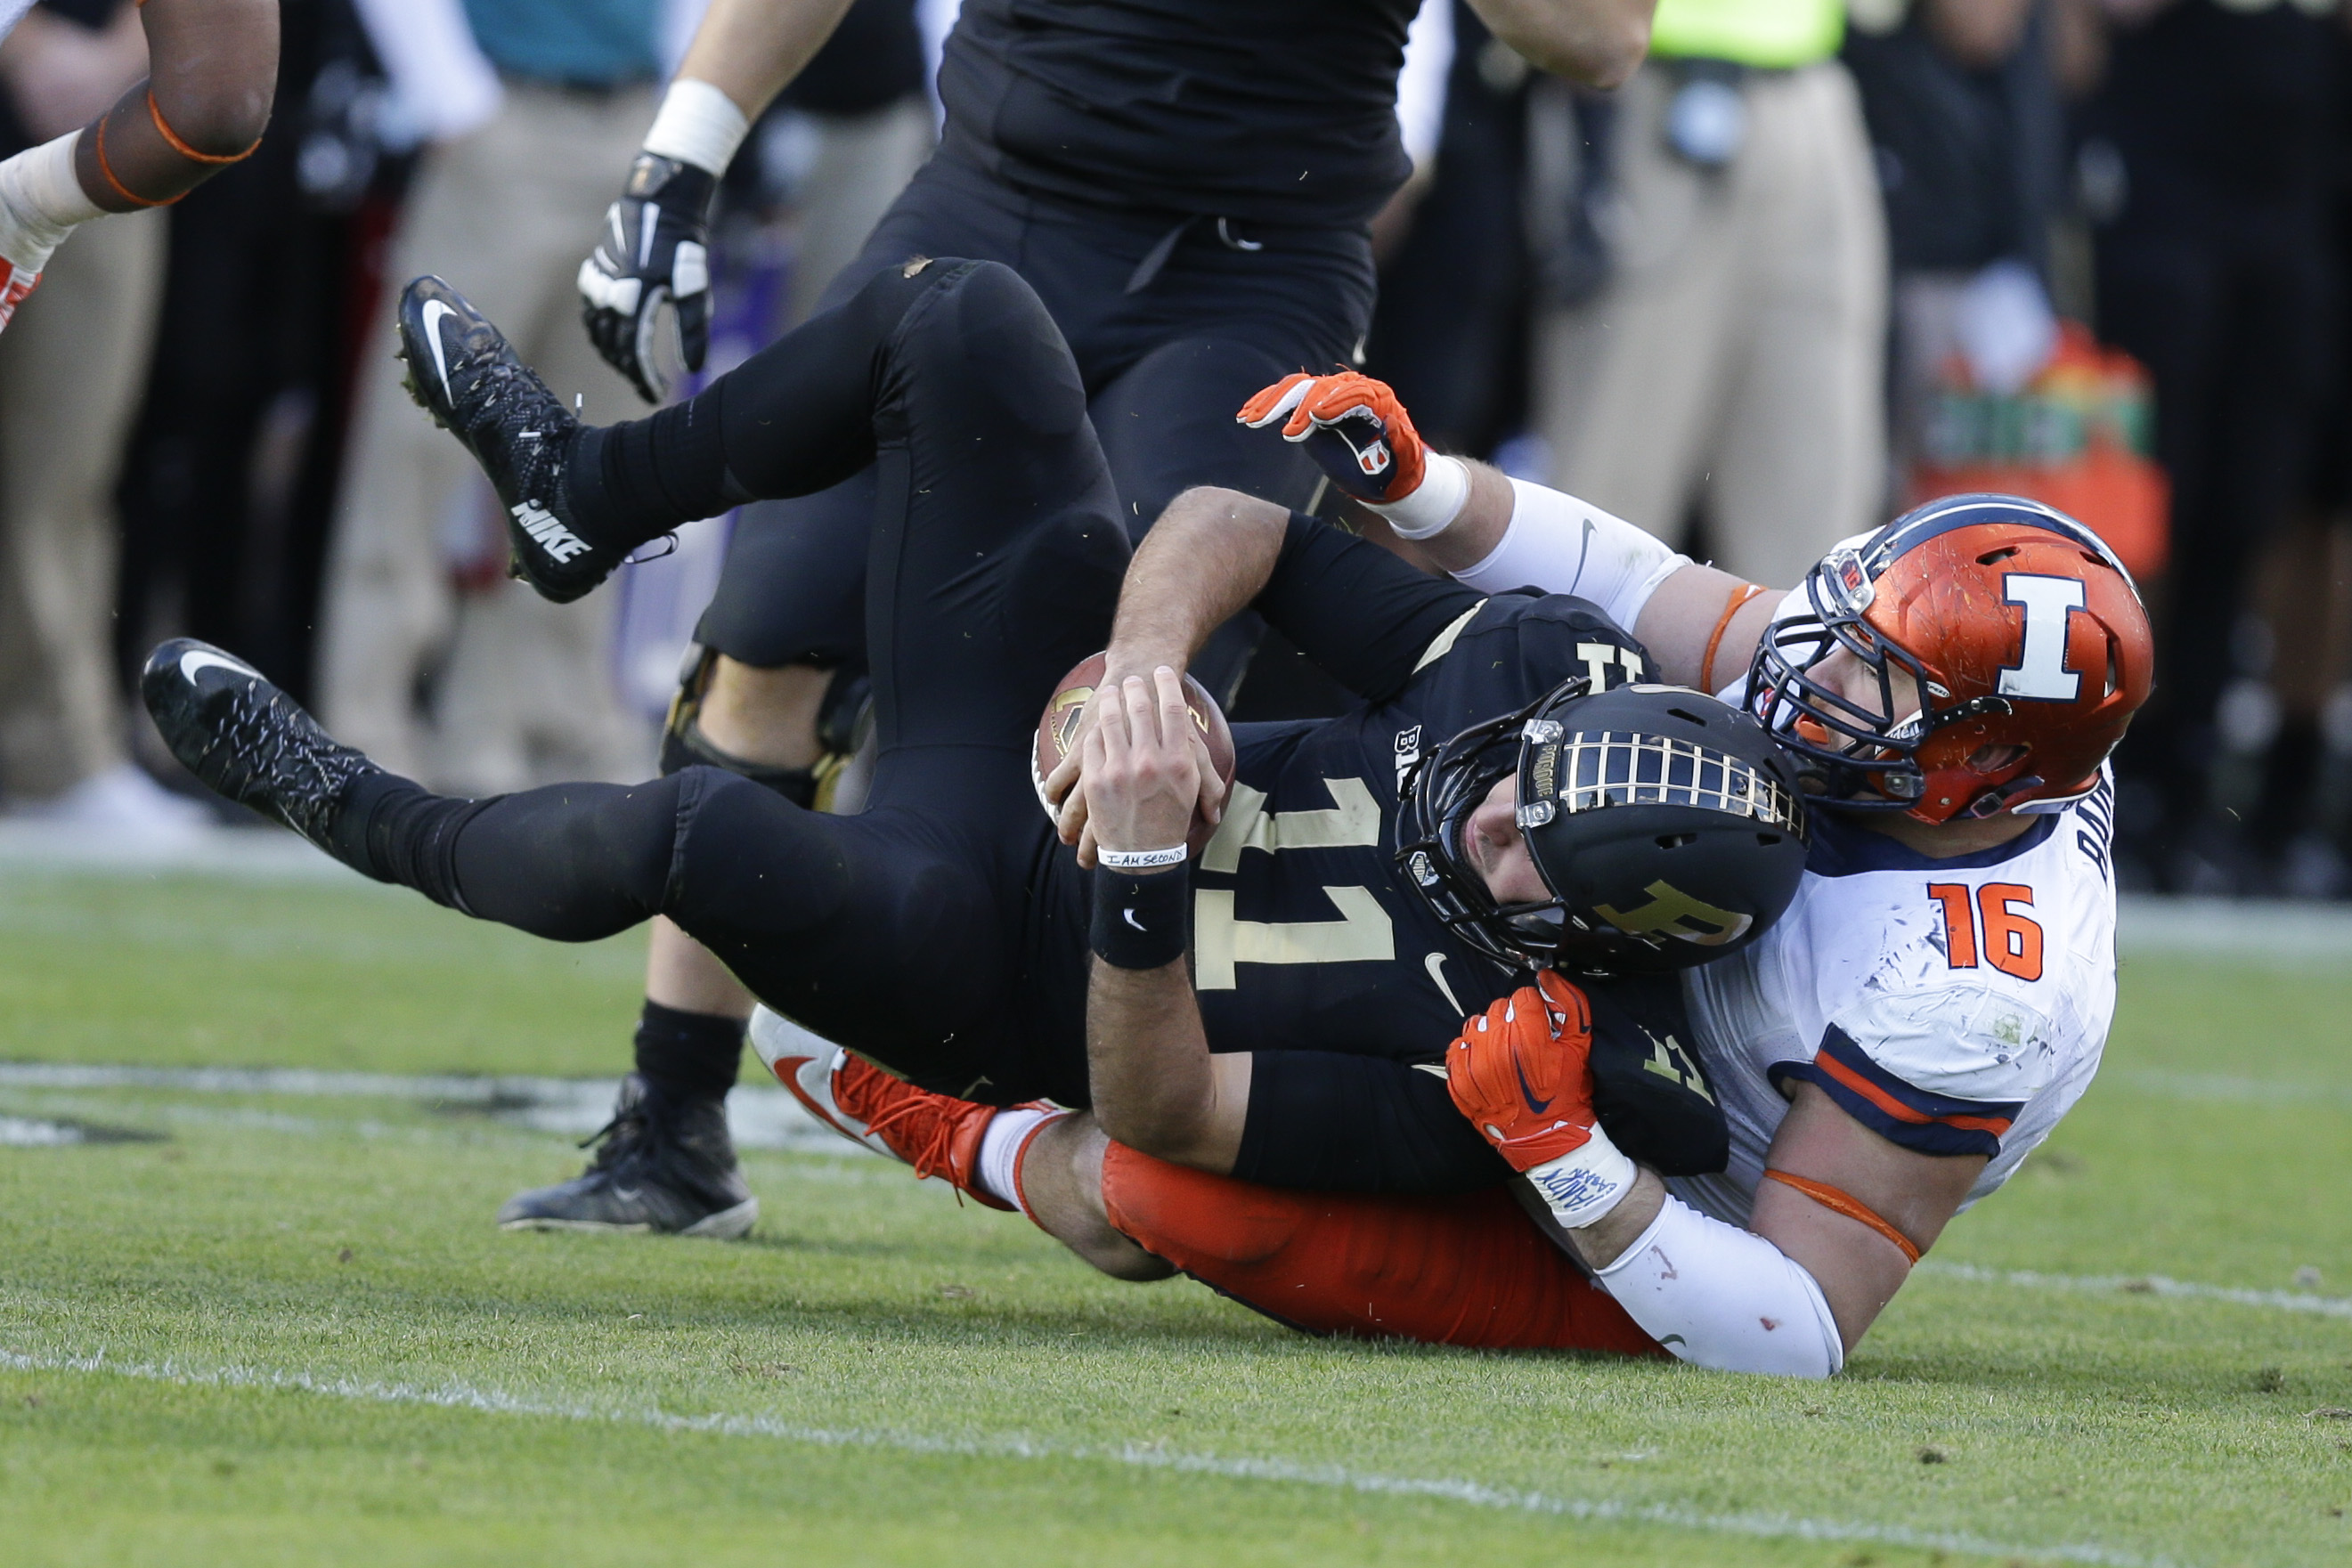 Illinois defensive lineman Jihad Ward (17) sacks Purdue quarterback David Blough (11) during the second half of an NCAA college football game in West Lafayette, Ind., Saturday, Nov. 7, 2015. Illinois defeated Purdue 48-14. (AP Photo/Michael Conroy)